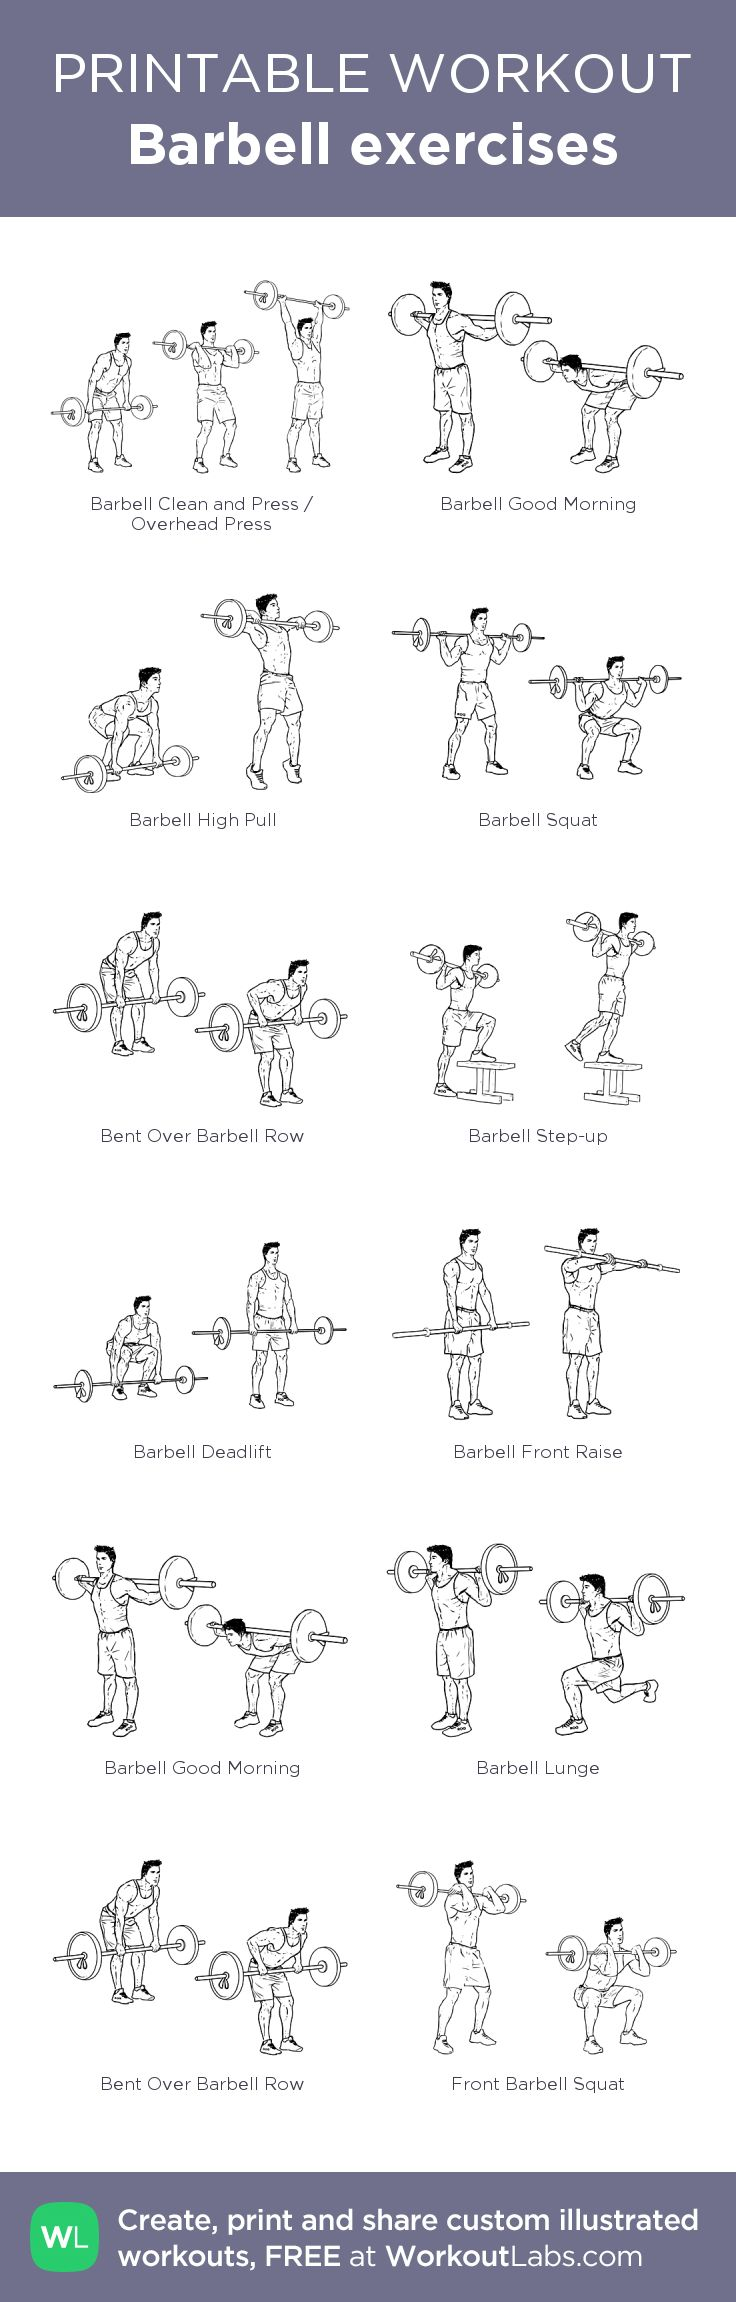 Barbell exercises: my visual workout created at WorkoutLabs.com • Click through to customize and download as a FREE PDF! #customworkout